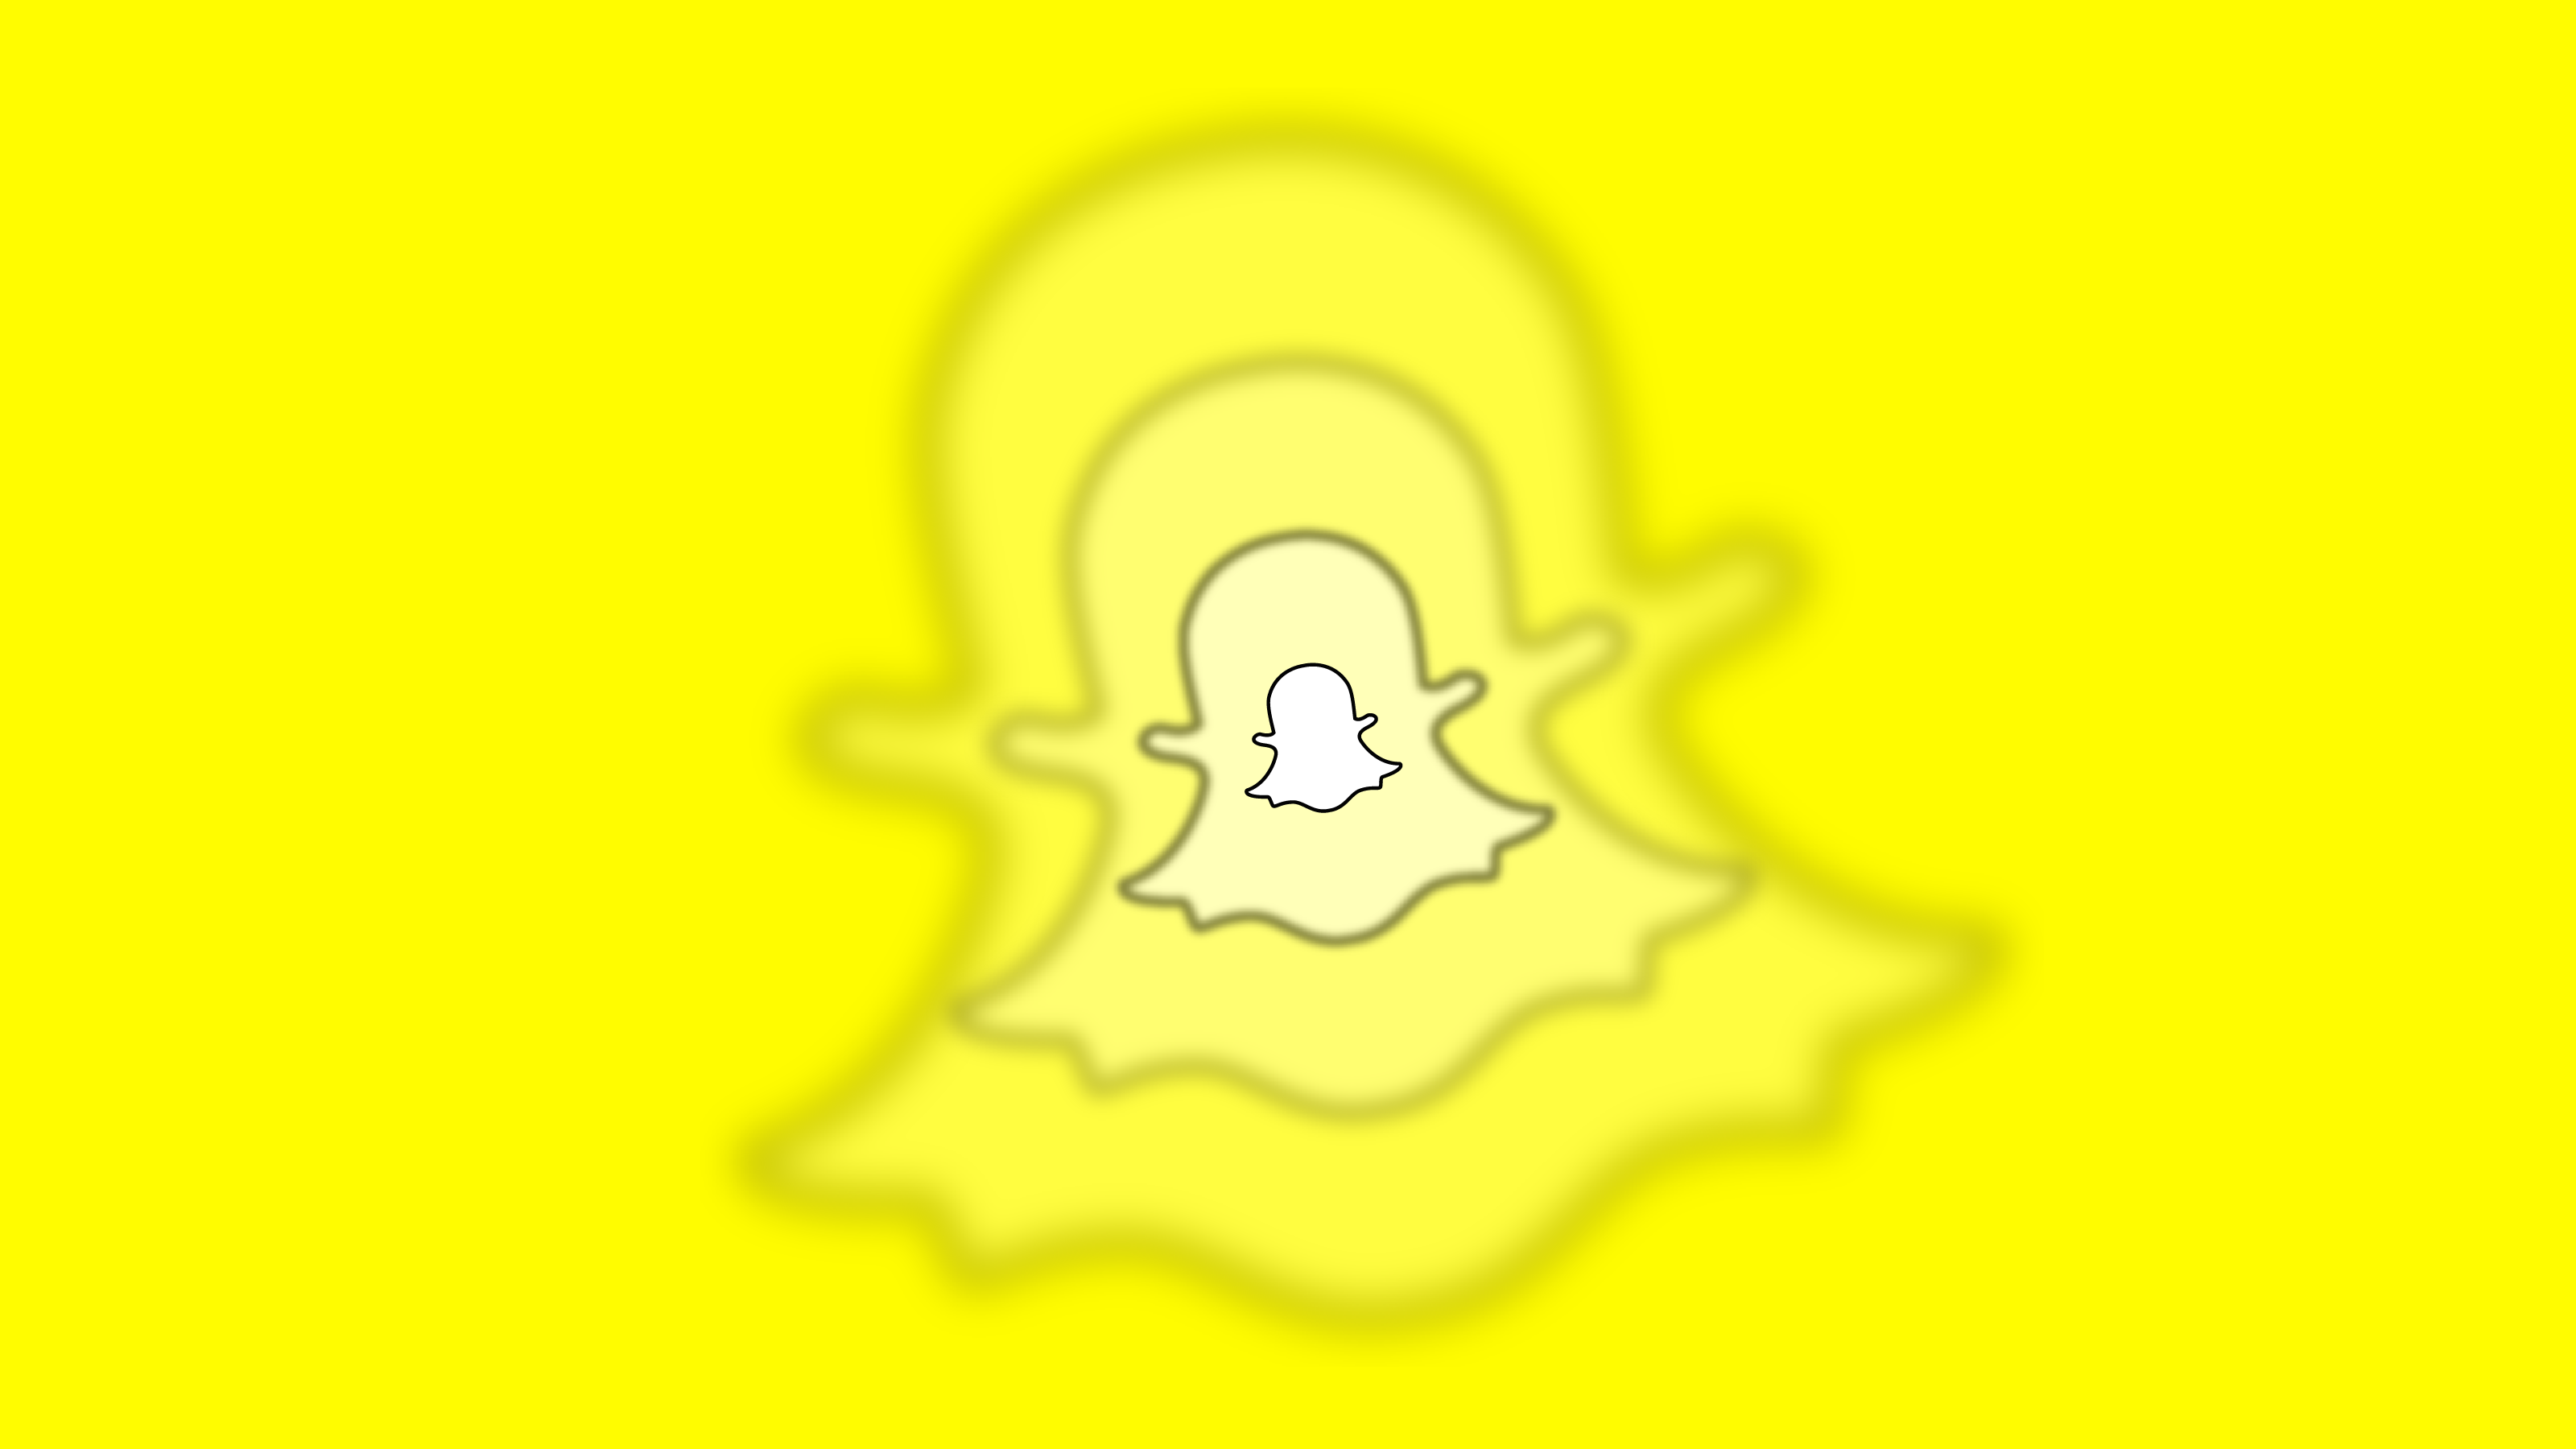 Snapchat will now let you delete messages in chat